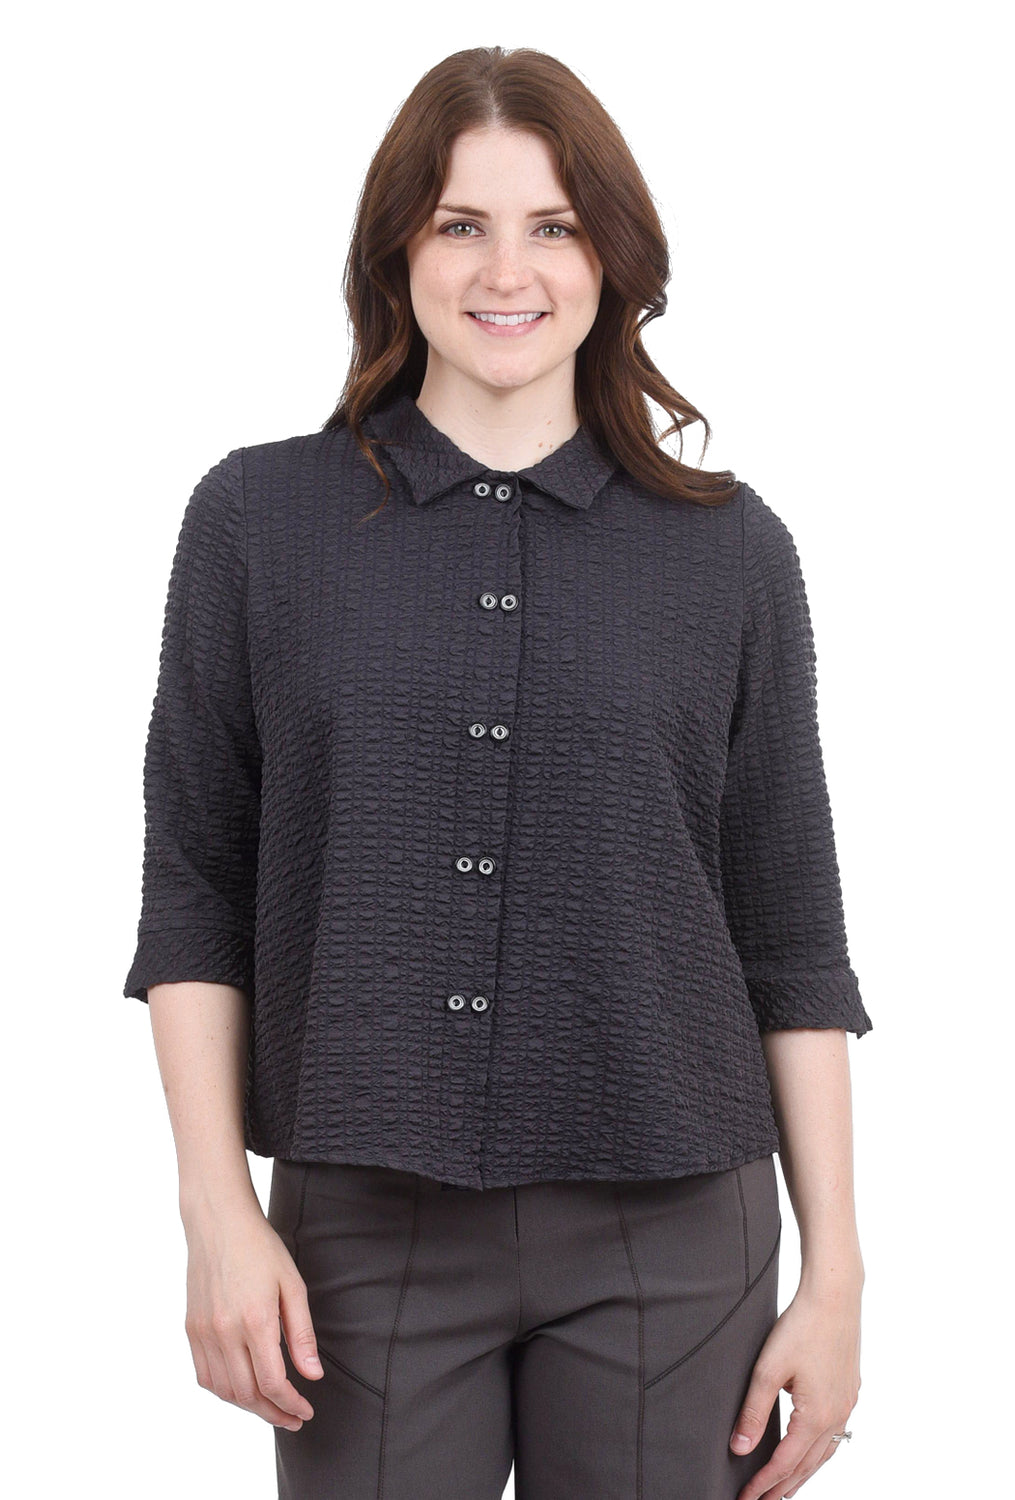 Niche Pucker Twinbutton Top, Pewter